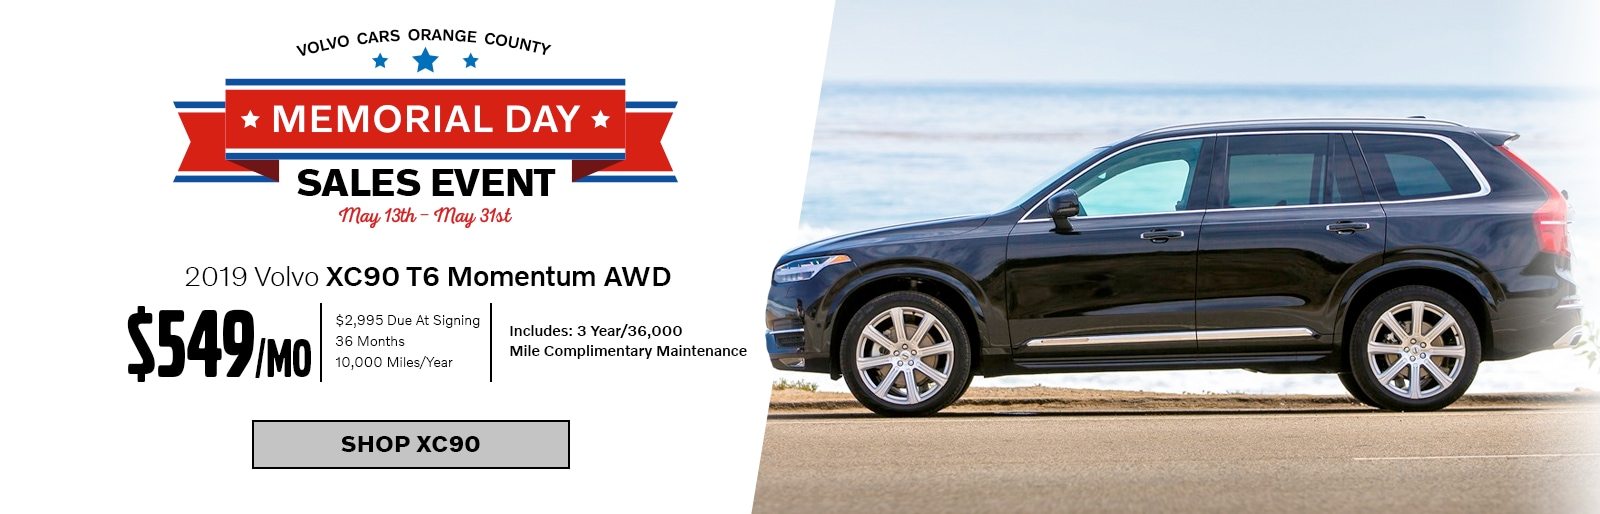 Tustin Auto Center >> New & Used Volvo Cars in Santa Ana CA| Volvo of Orange County Serving Irvine, Huntington Beach ...